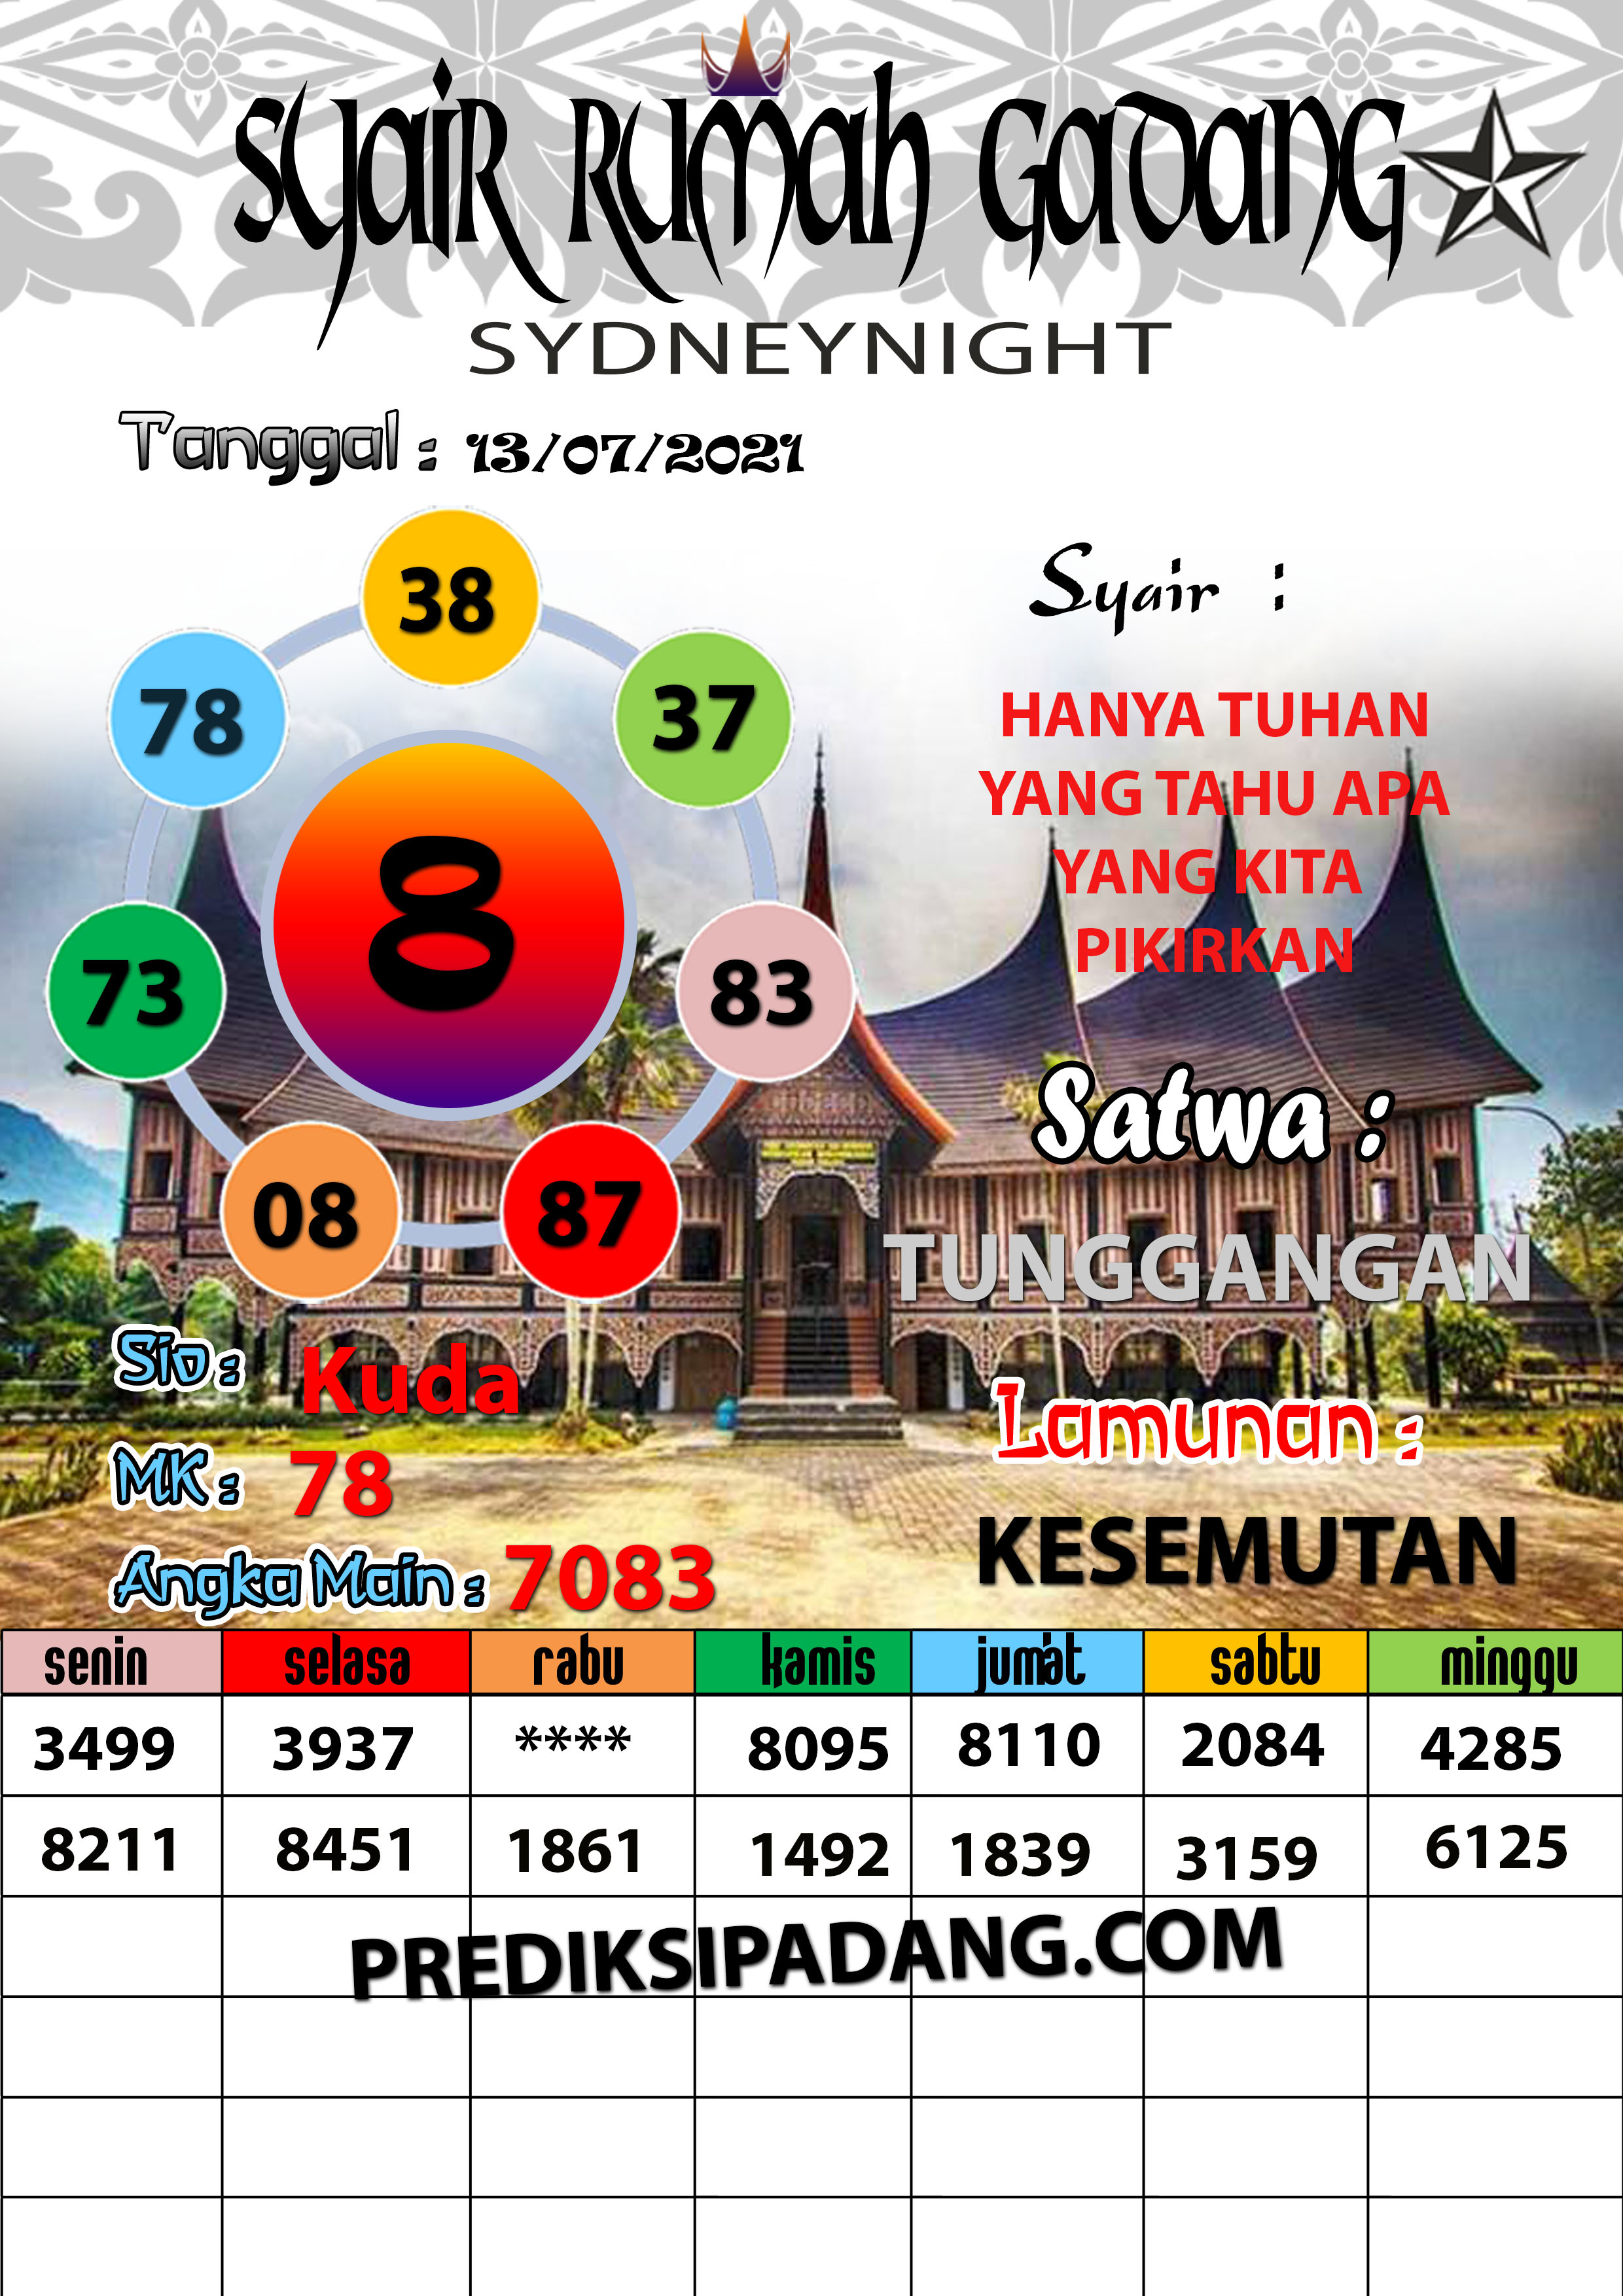 PADANG%20TOTO%20SIDNEYNIGHT-Recovered-Recovered.jpeg